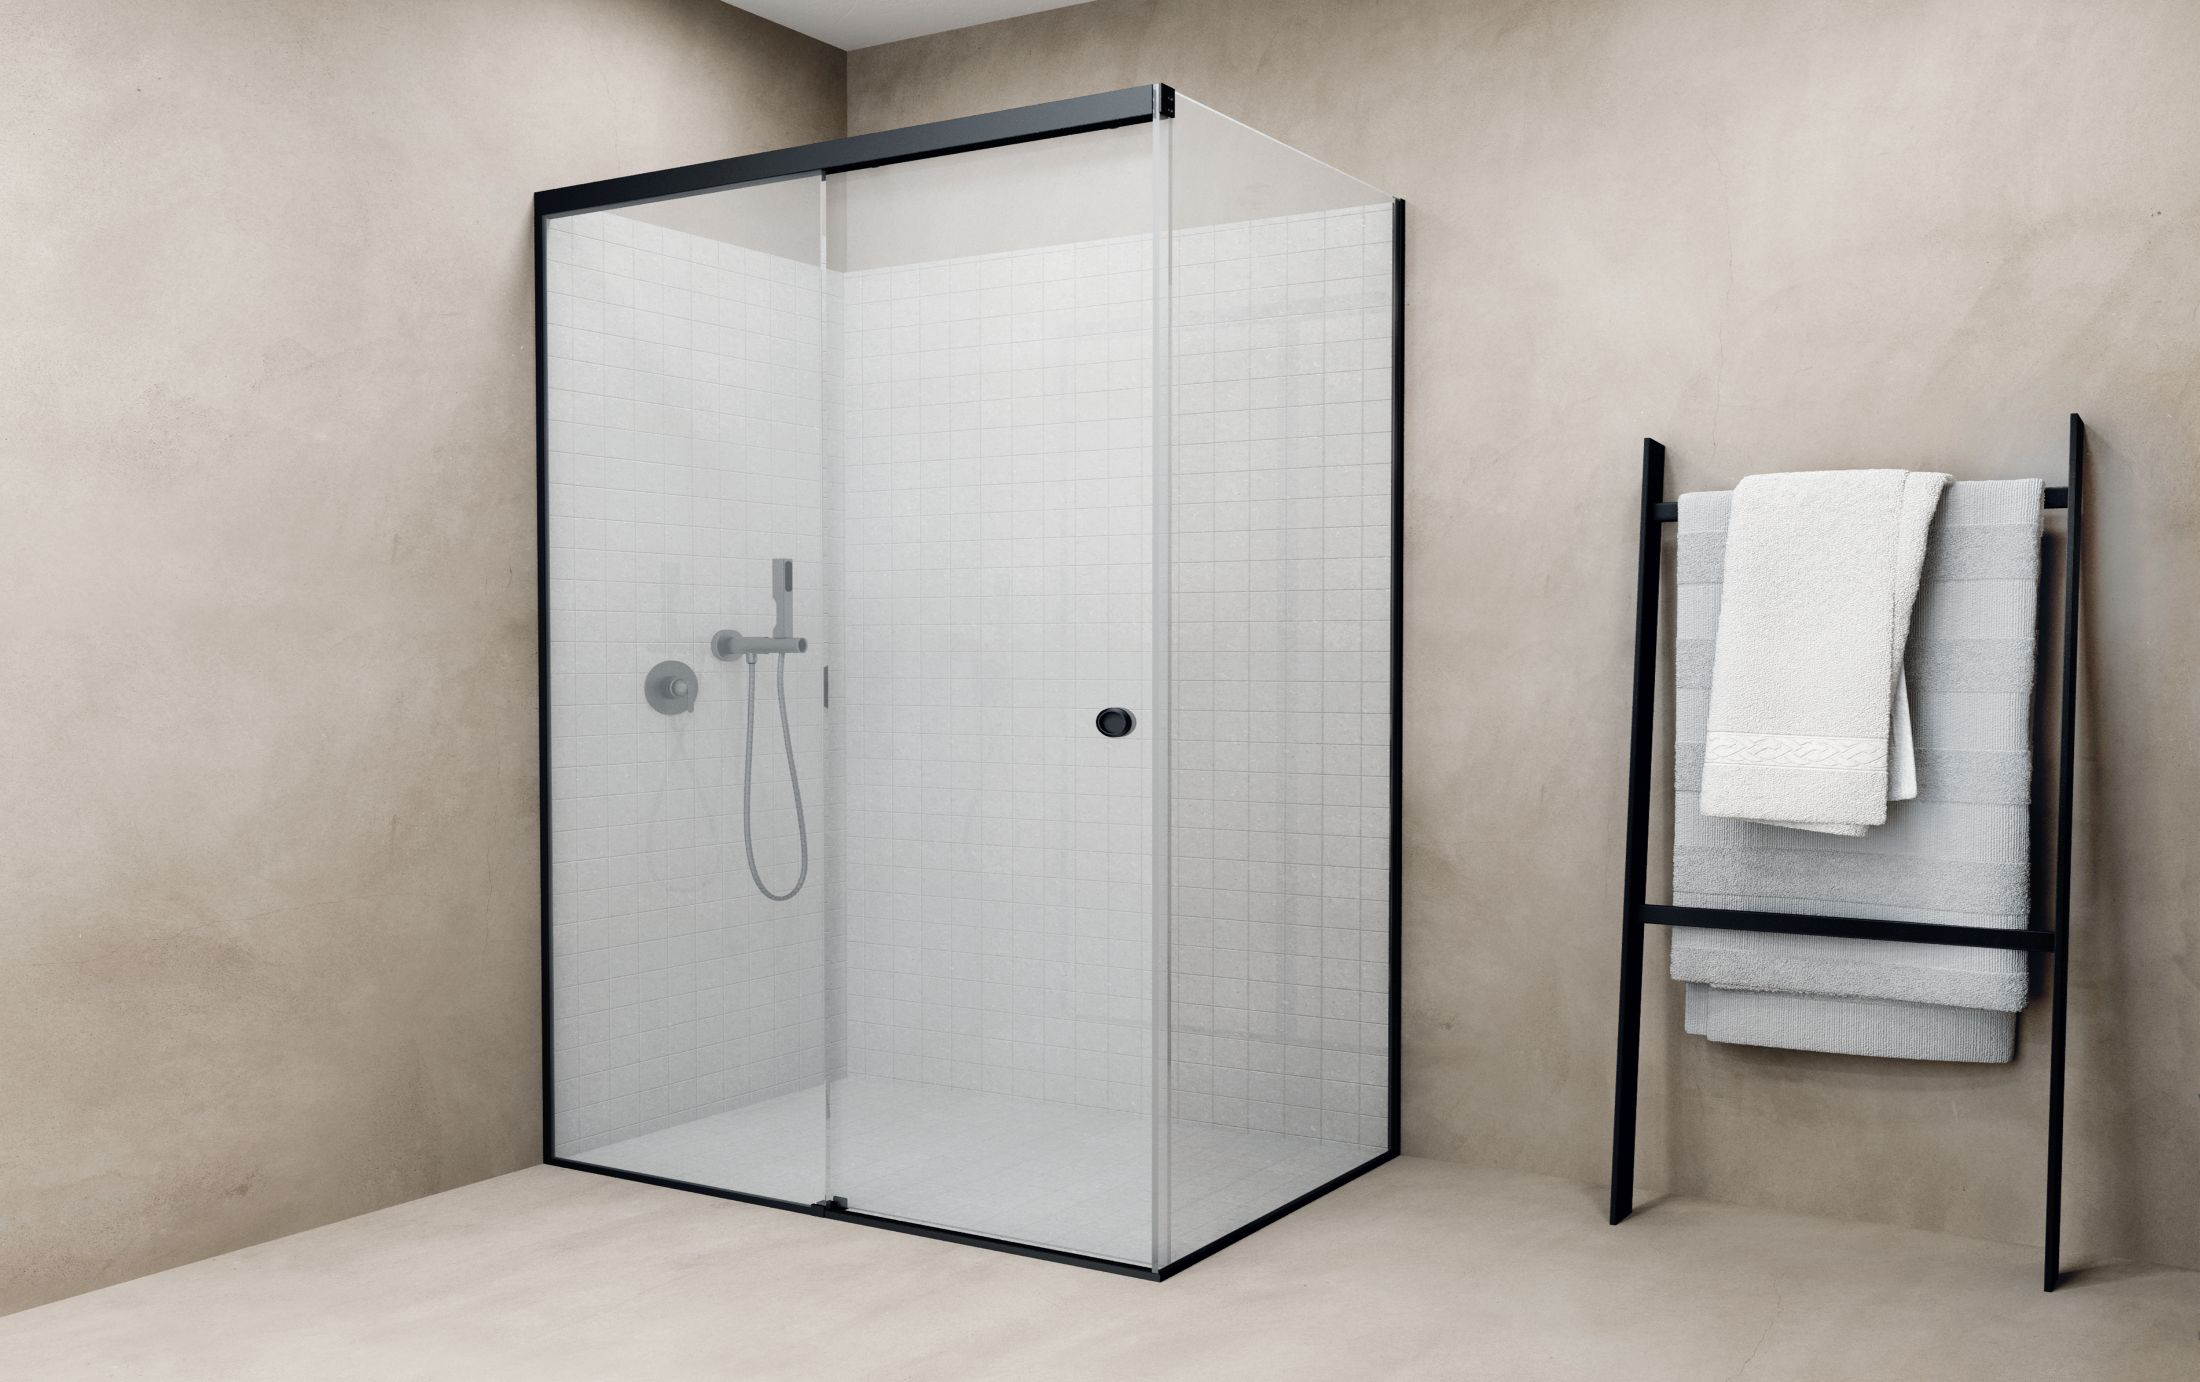 New Aluminium sliding door shower systems GS-R10/11/12/13 from Panidis SA